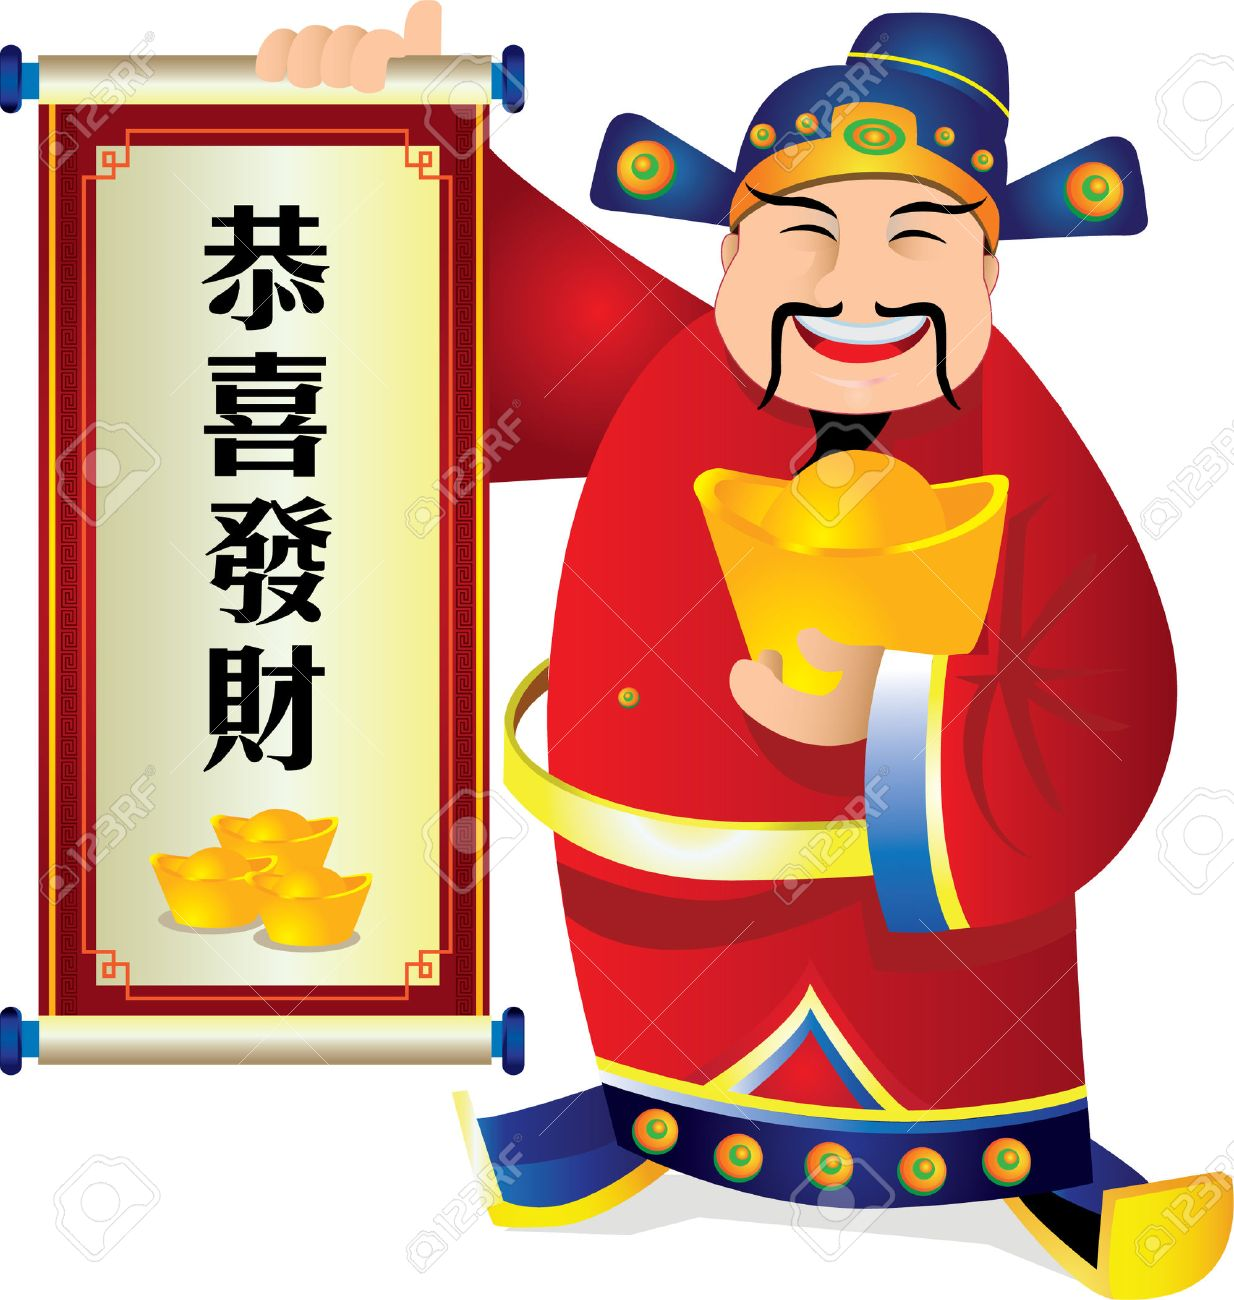 chinese god of prosperity a popular new year symbol stock vector 31293911 - Chinese New Year Sign